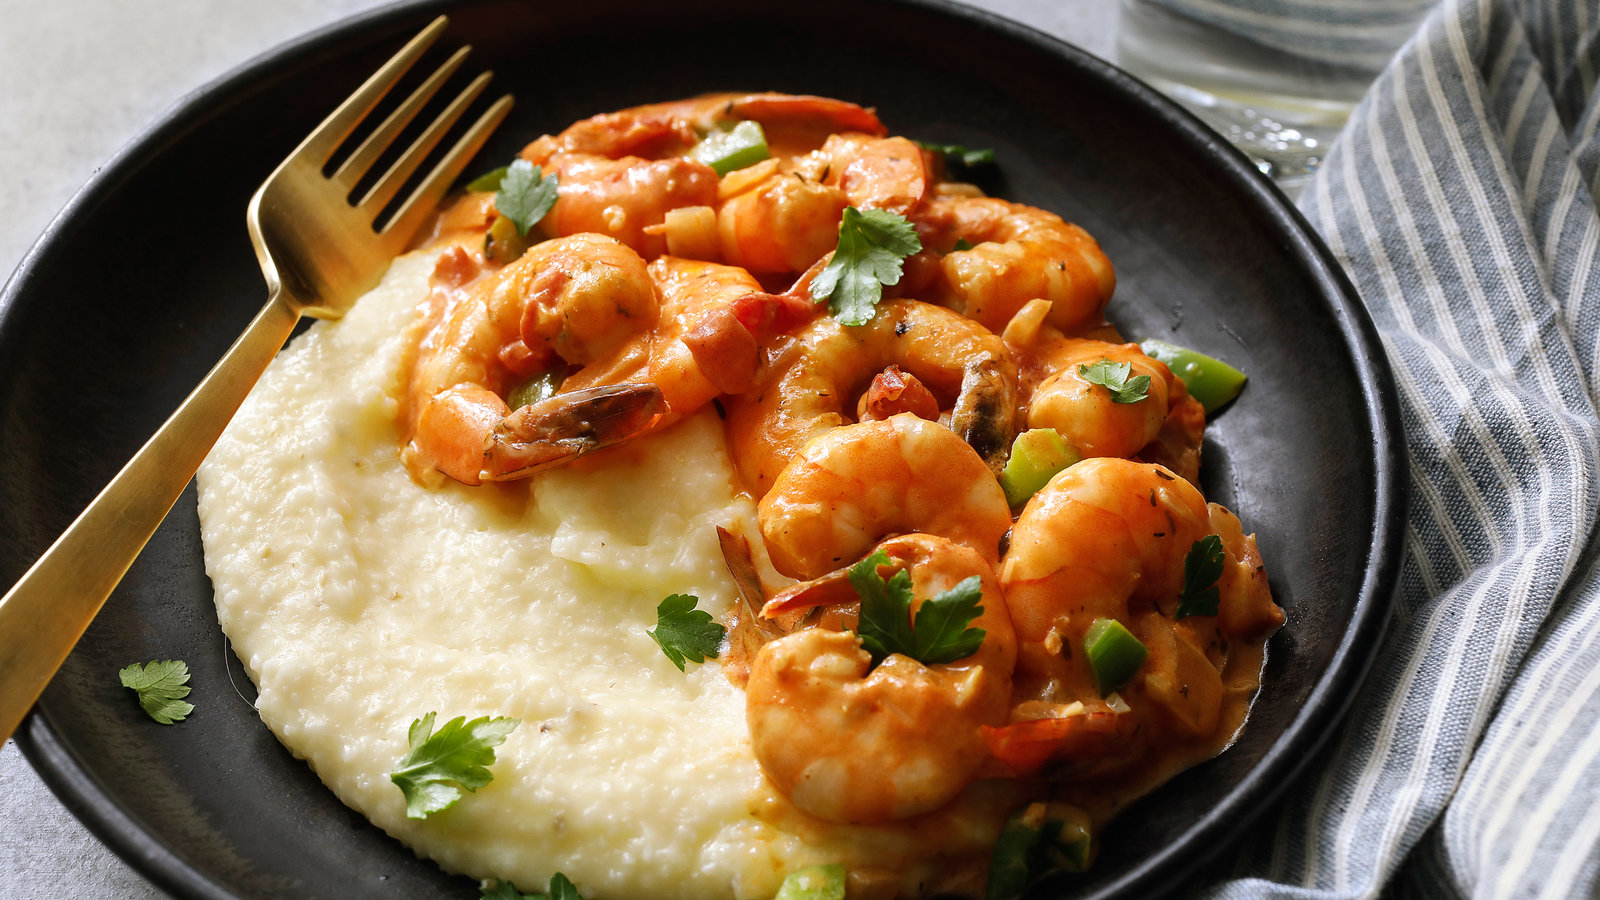 5-Minute Grits With Shrimp